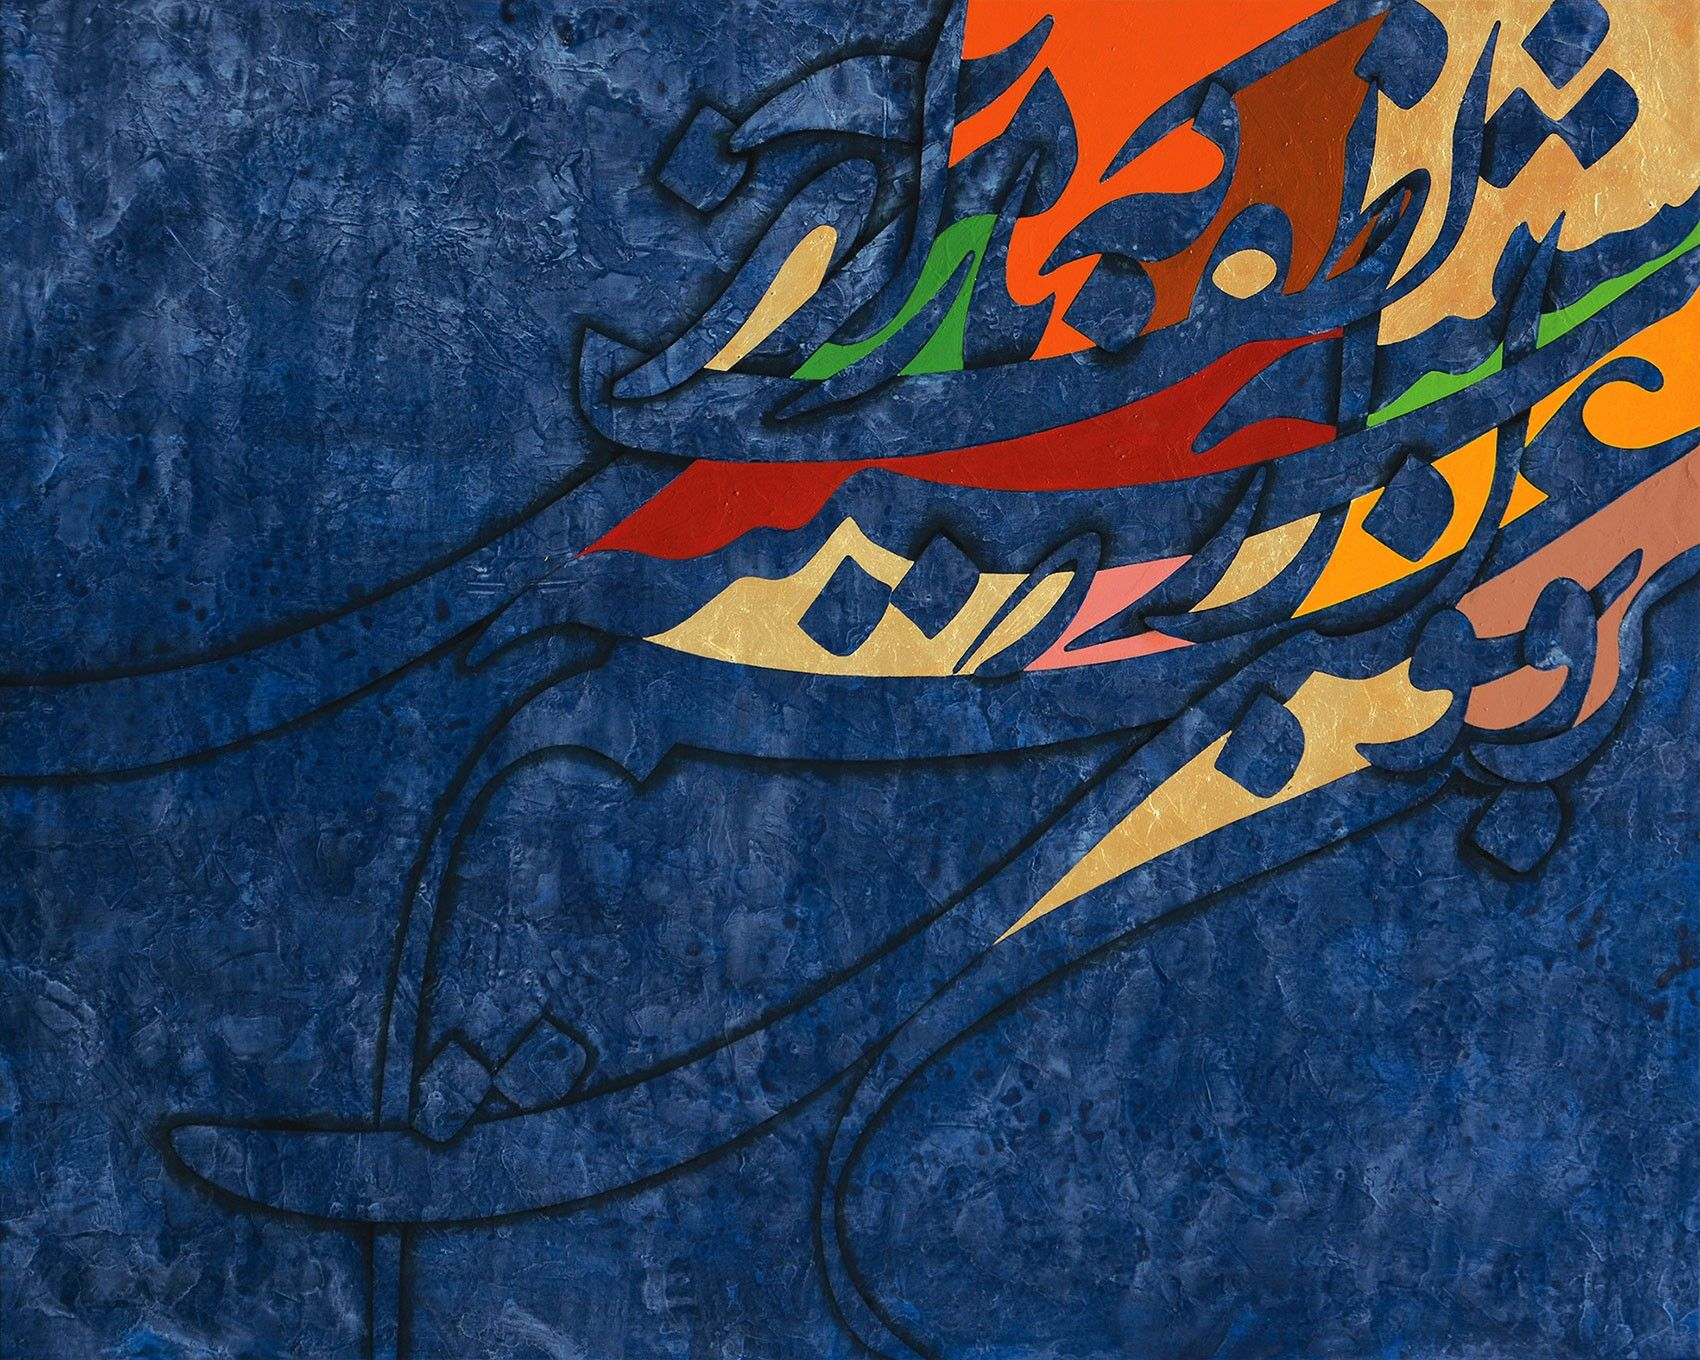 Calligraphy Art By Robabe Hoseinpour Persian Artist The